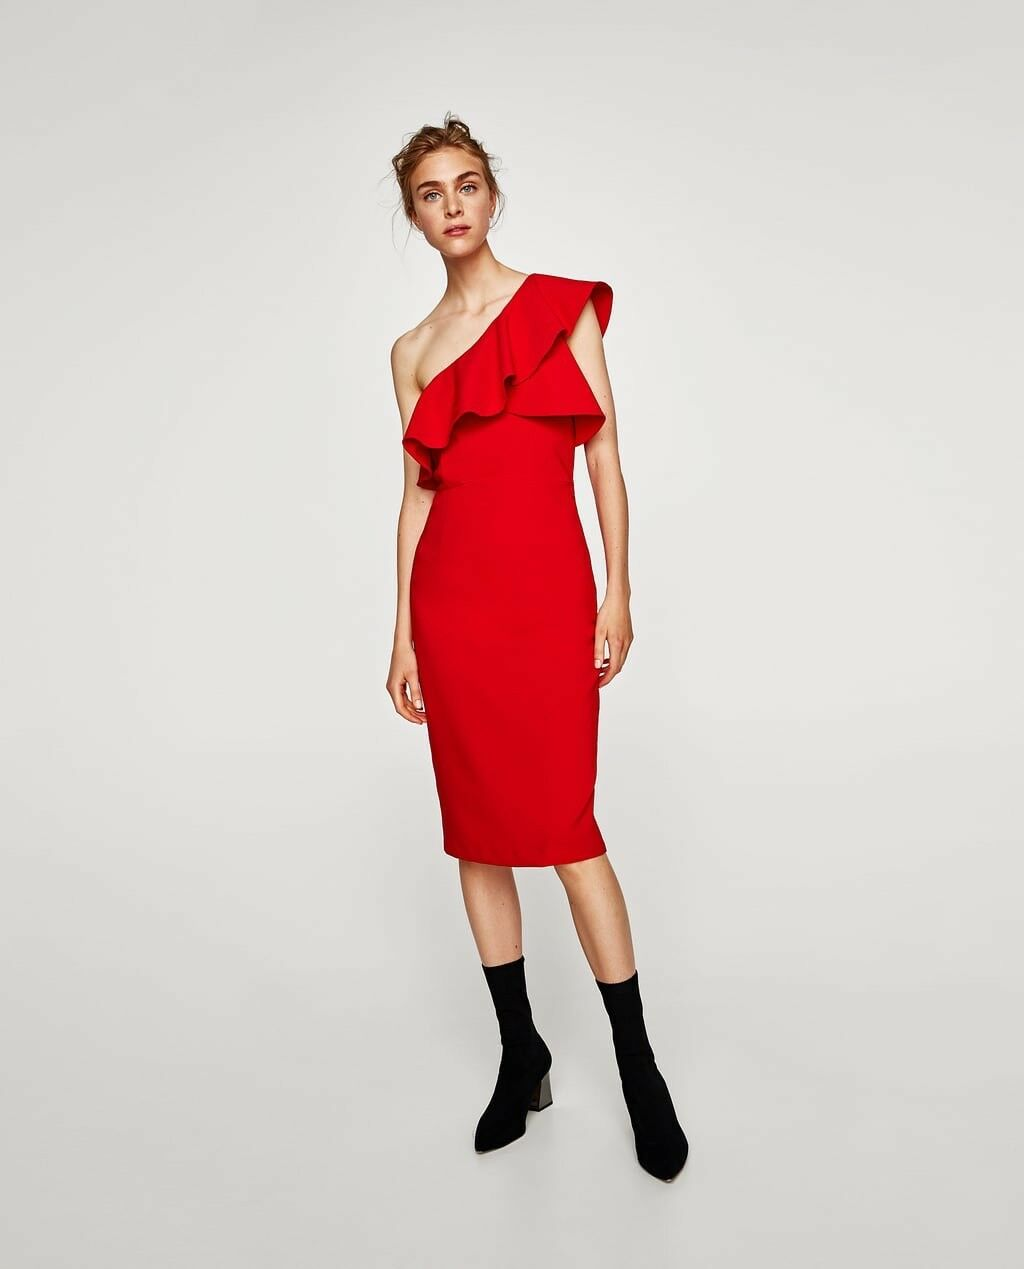 Zara Women Frilled Asymmetric Dress Red Size M NWT